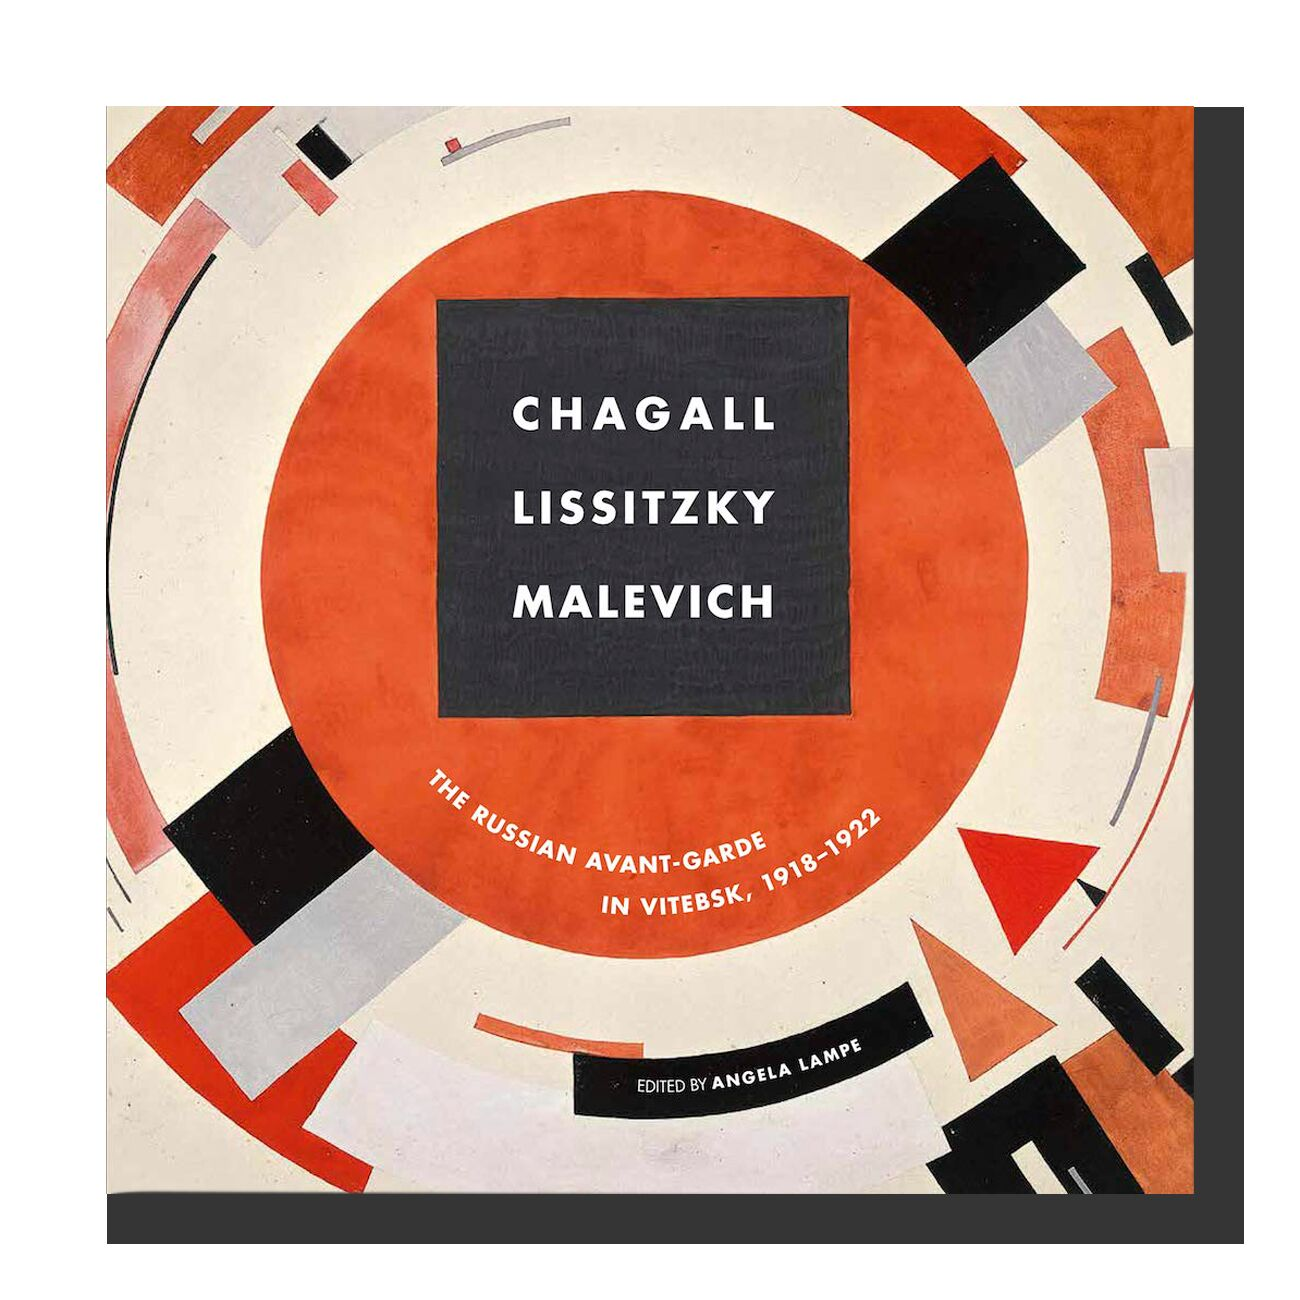 Chagall, Lissitzky, Malevitch: The Russian Avant-garde in Vitebsk (1918-1922)